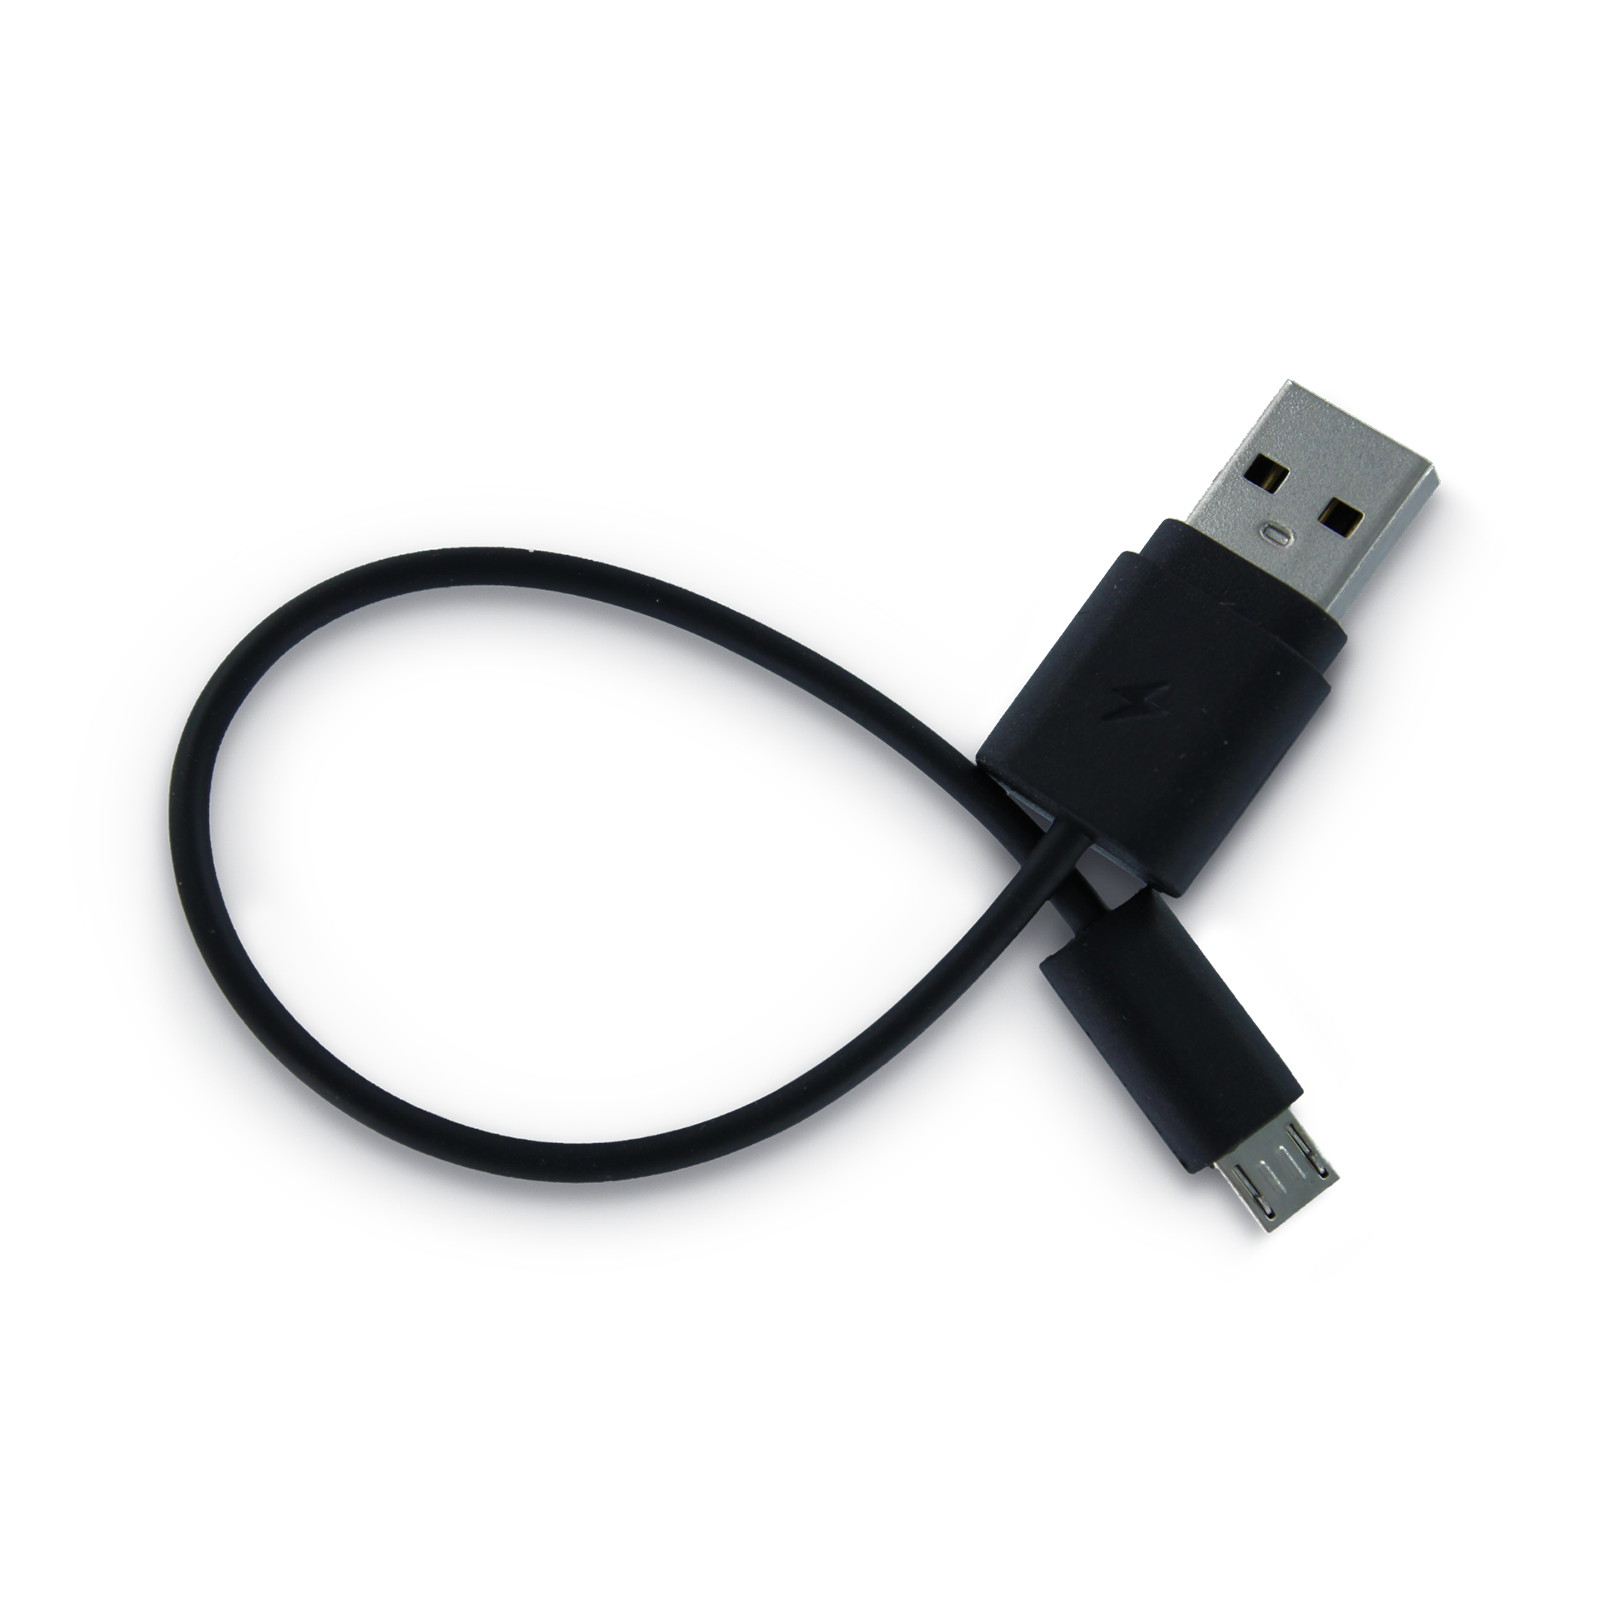 Charging cable for INSP700